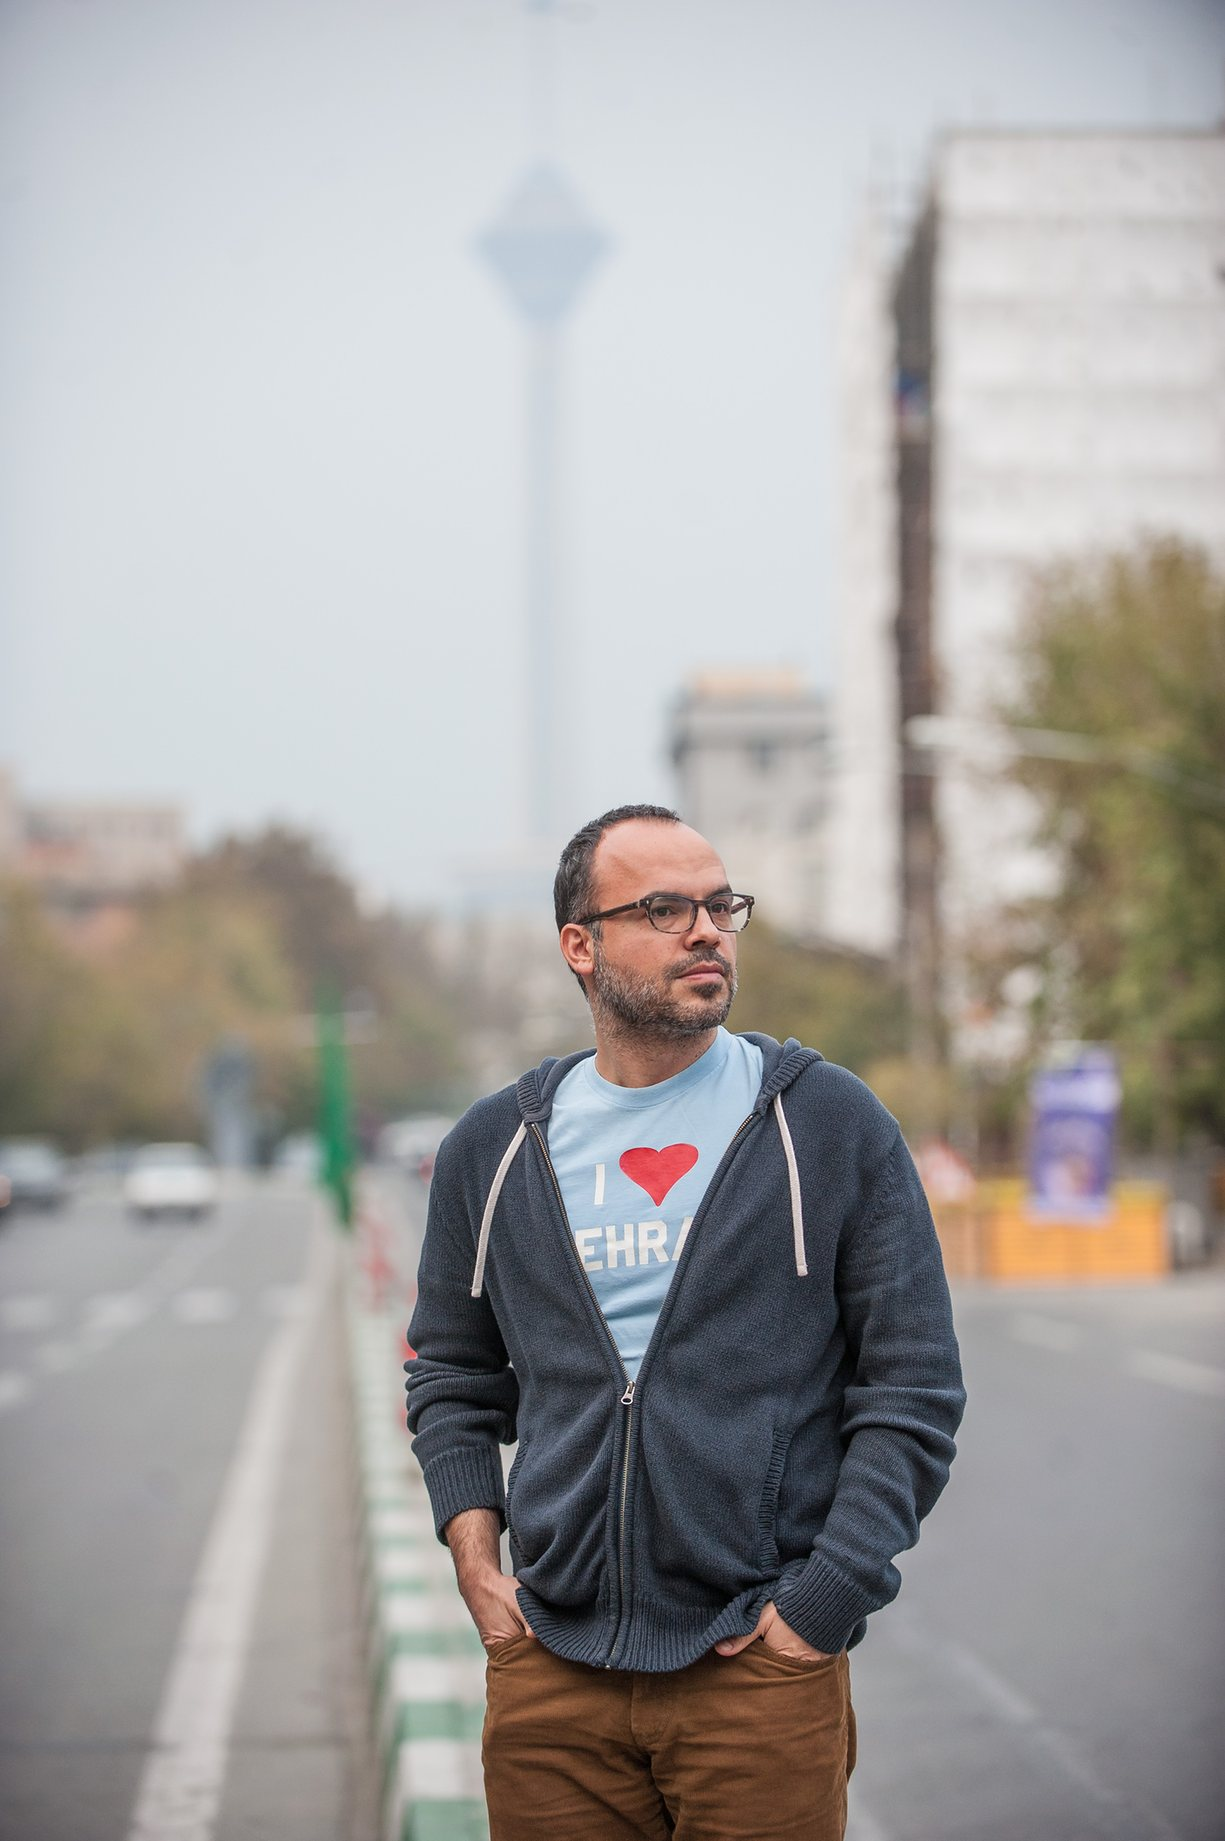 'The centralisation of information is making us all much less powerful' … Iranian blogger Hossein Derakhshan, who was imprisoned for six years. Photograph: Arash Ashoorinia for the Guardian